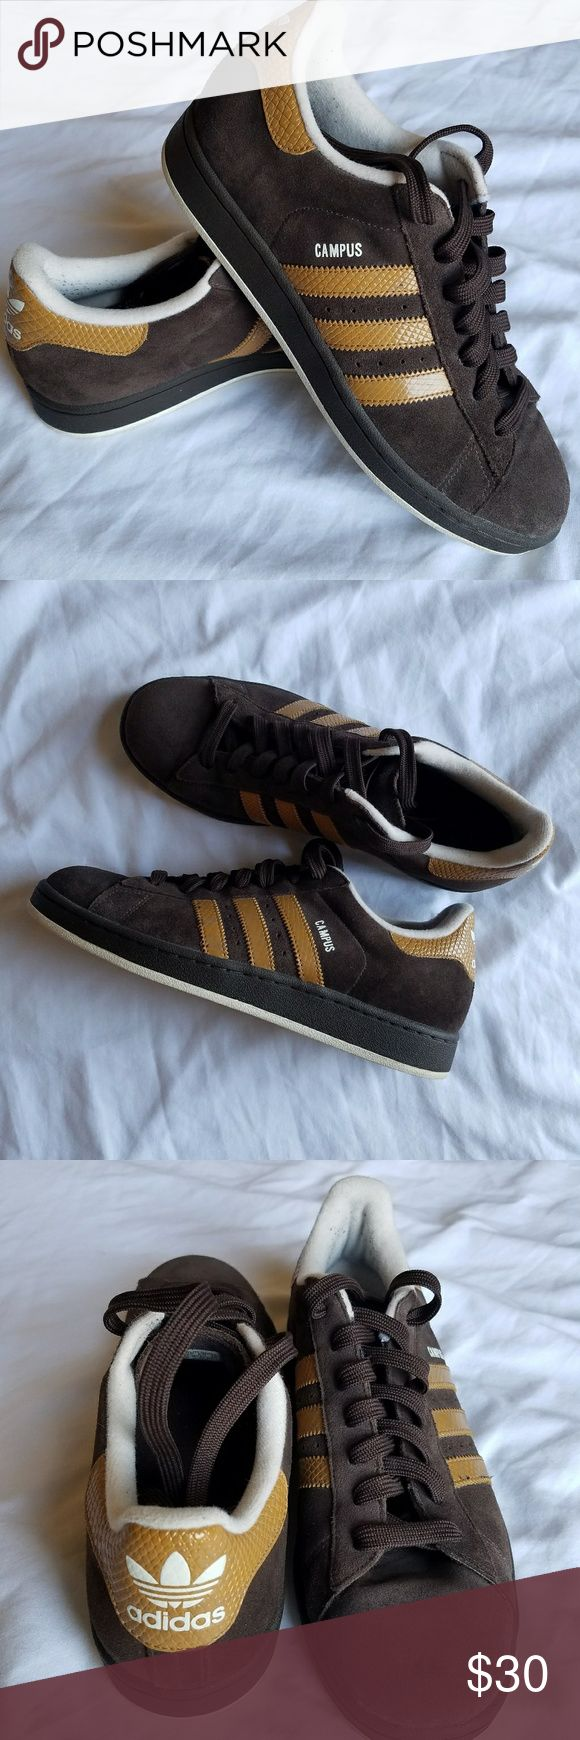 Adidas Campus Shoes size 9 Mens Adidas Campus shoes. Brown suede in men's size 9. Worn a few times but still in excellent shape. As much as I like them, I'm just not cool enough to pull them off... but maybe you are!? C'mon, buy them! All the cool kids are doing it. Adidas Shoes Sneakers